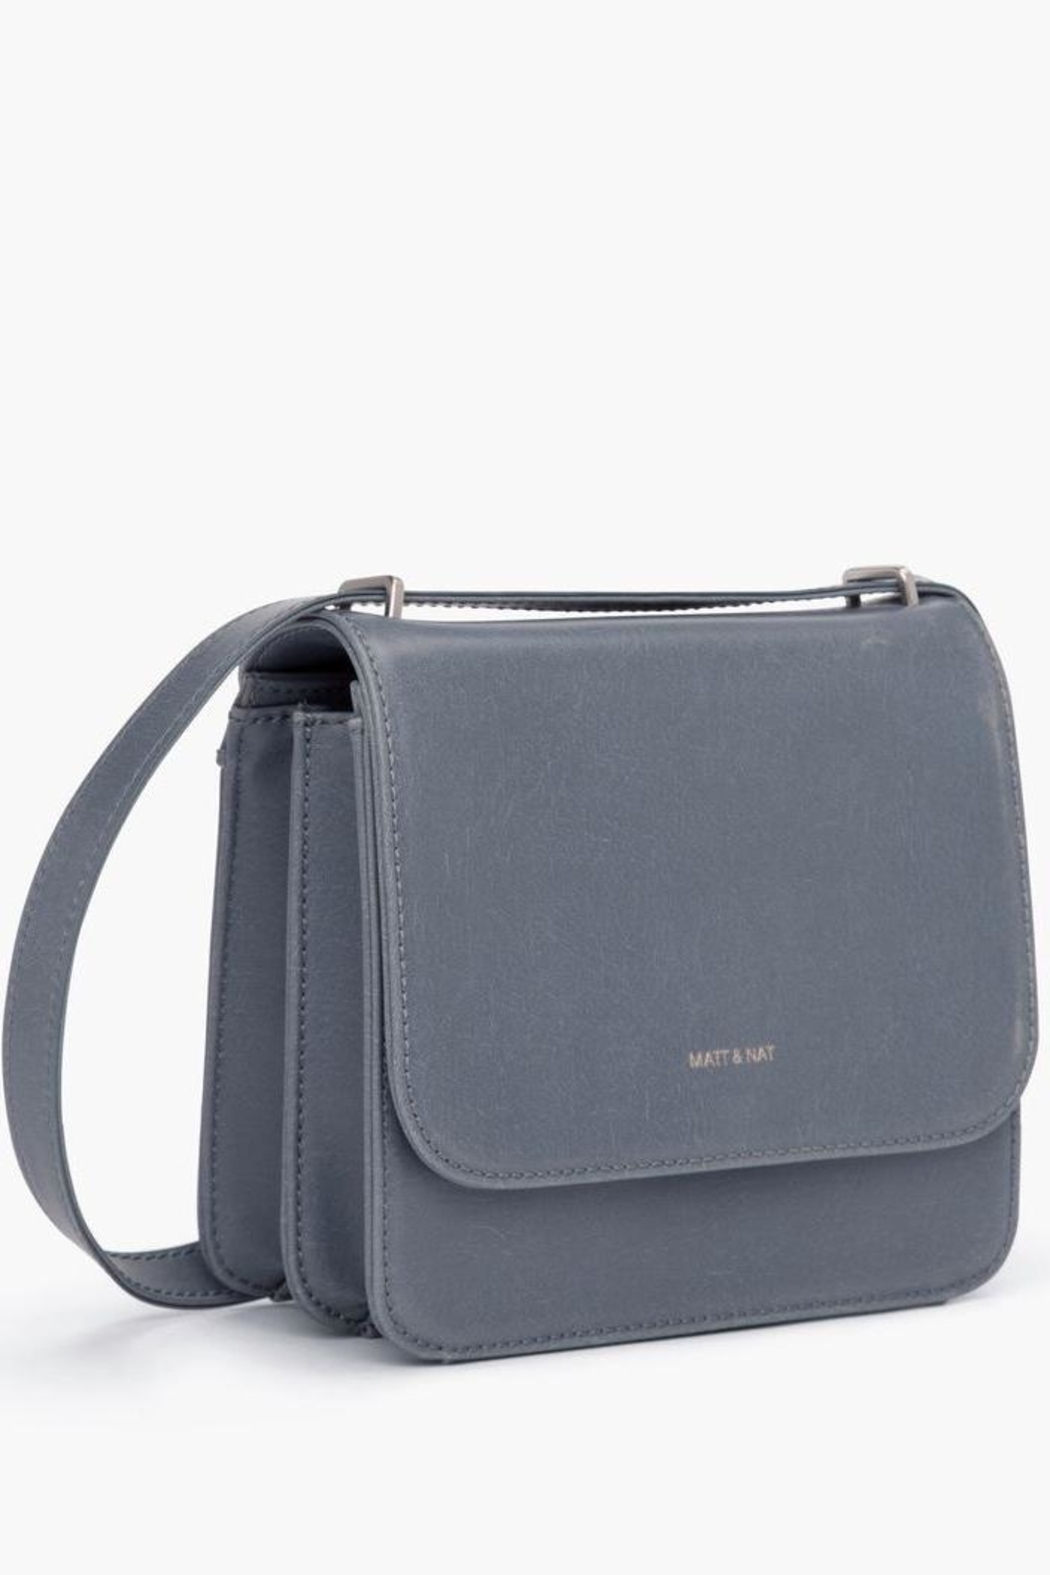 Matt & Nat Scarlett Crossbody Bag - Main Image